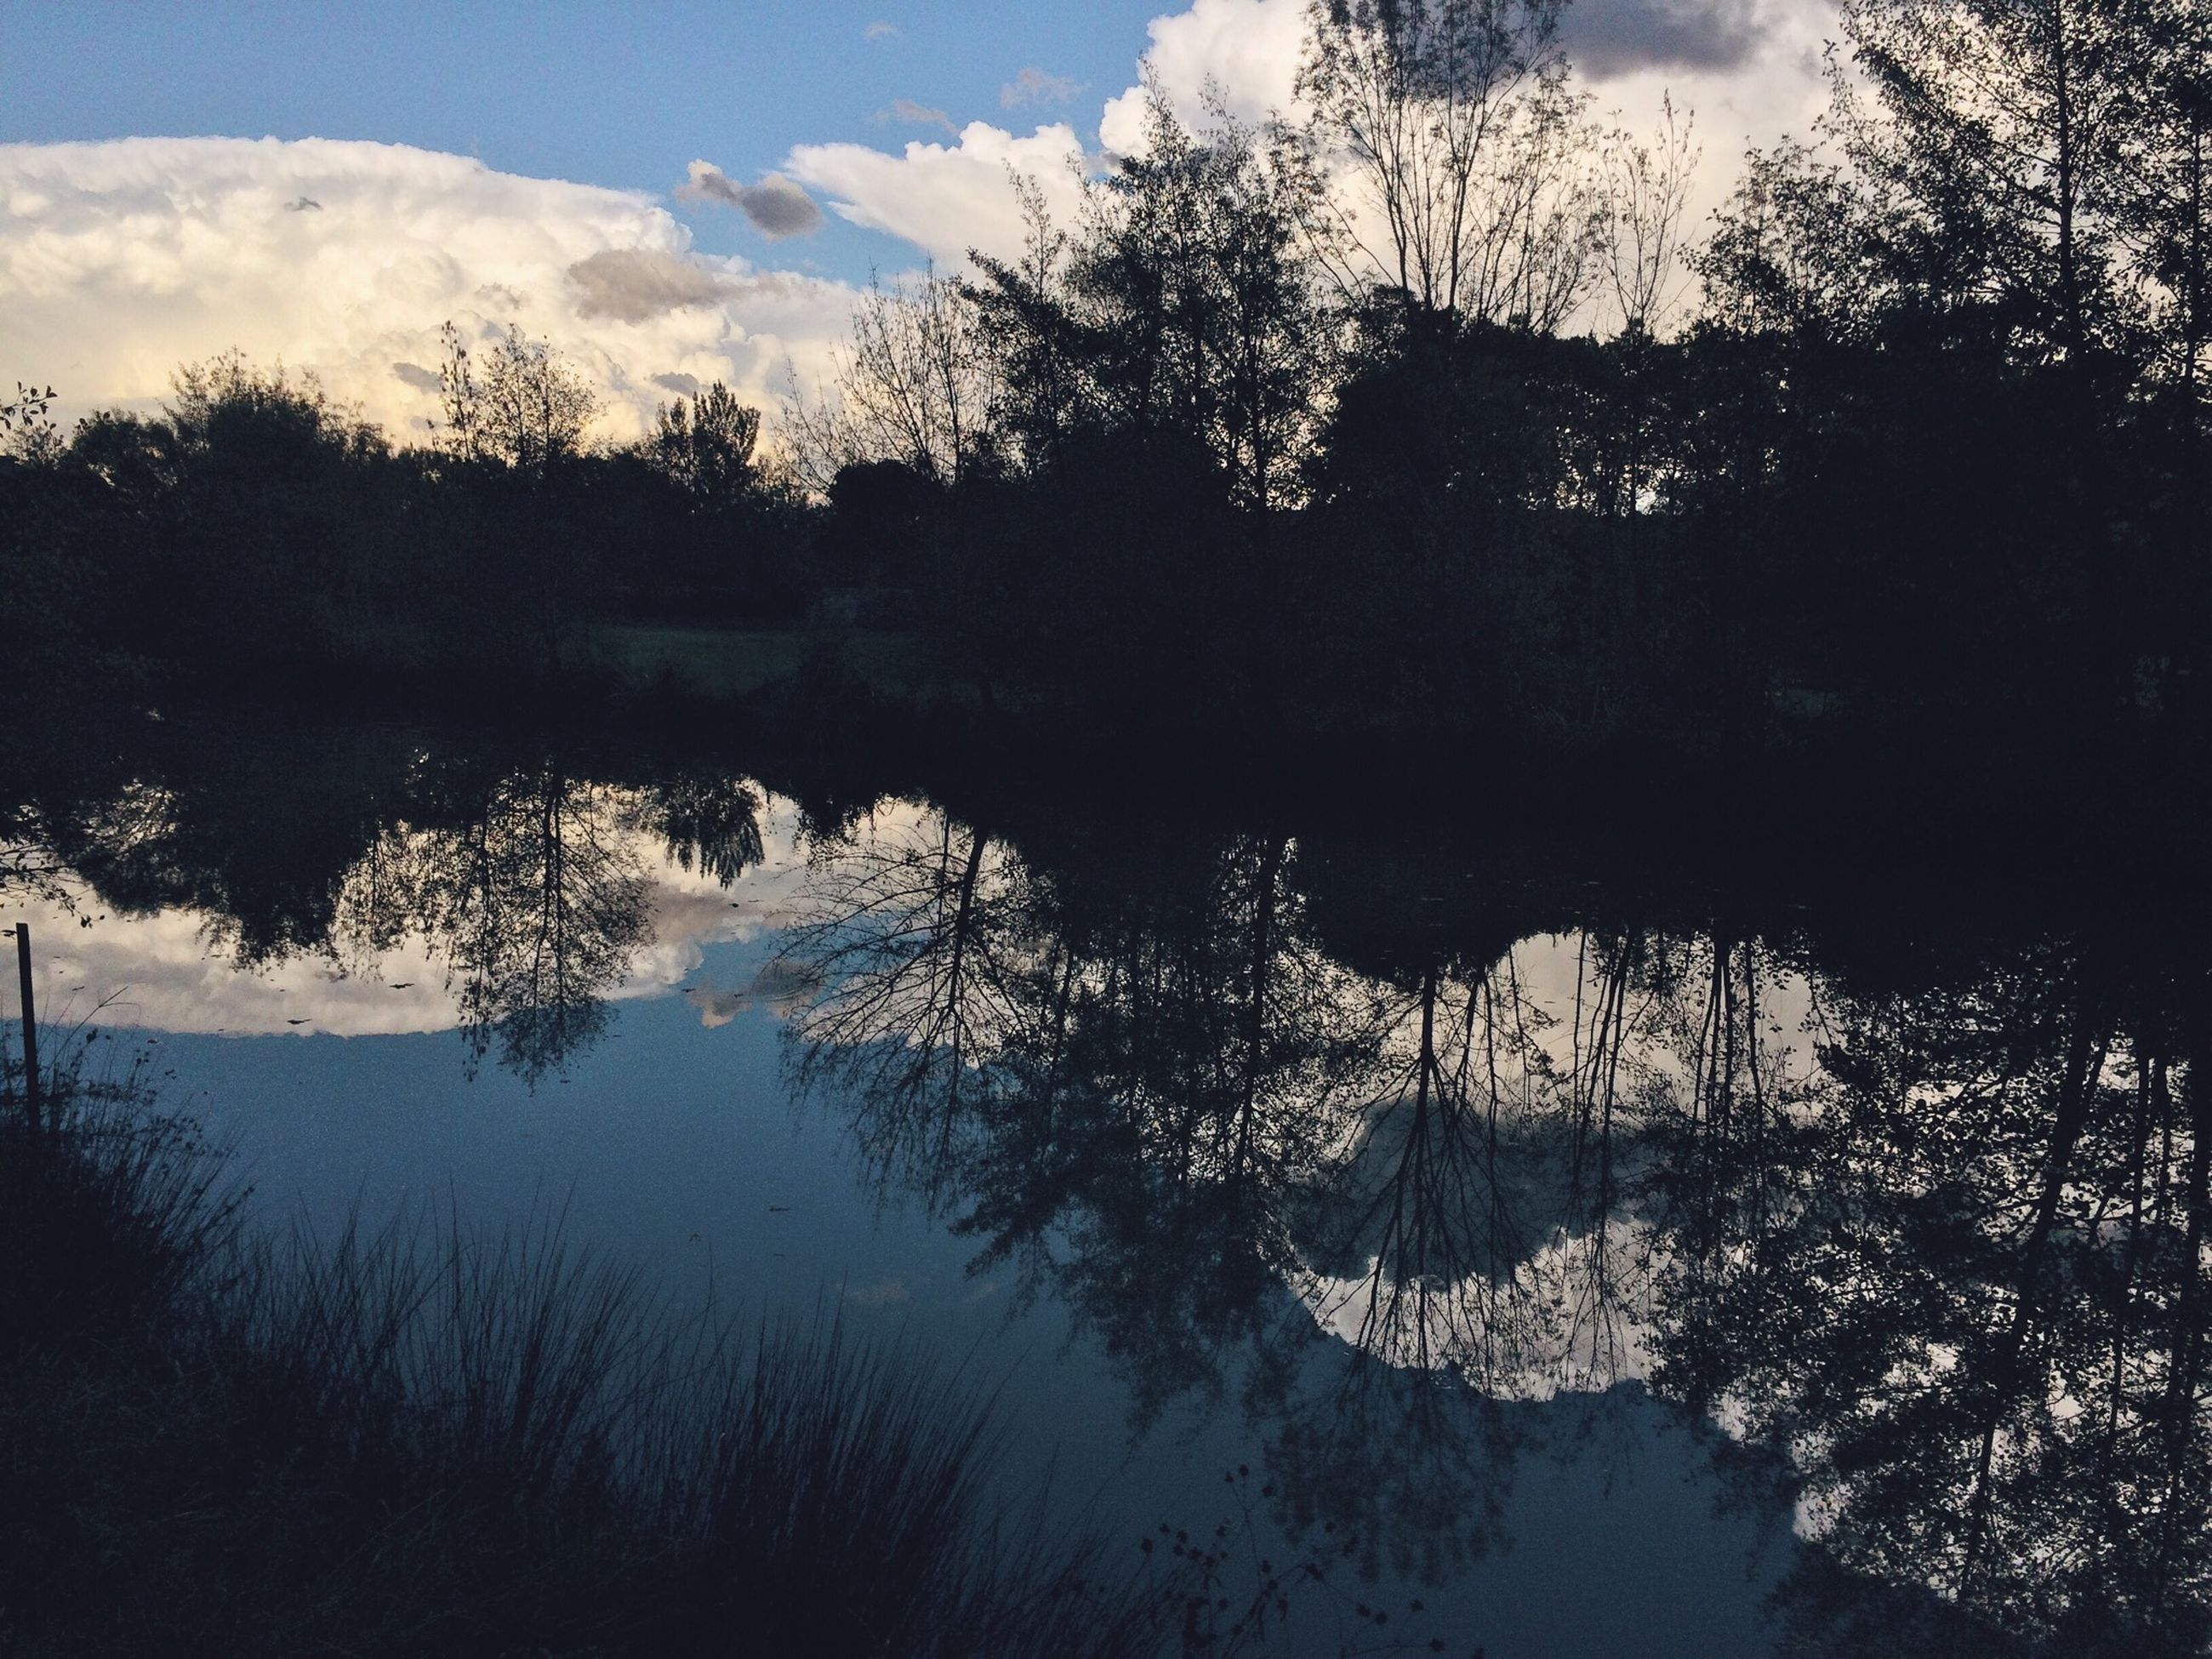 water, tree, lake, reflection, tranquility, tranquil scene, sky, scenics, silhouette, beauty in nature, nature, river, bare tree, cloud - sky, lakeshore, calm, sunset, idyllic, cloud, no people